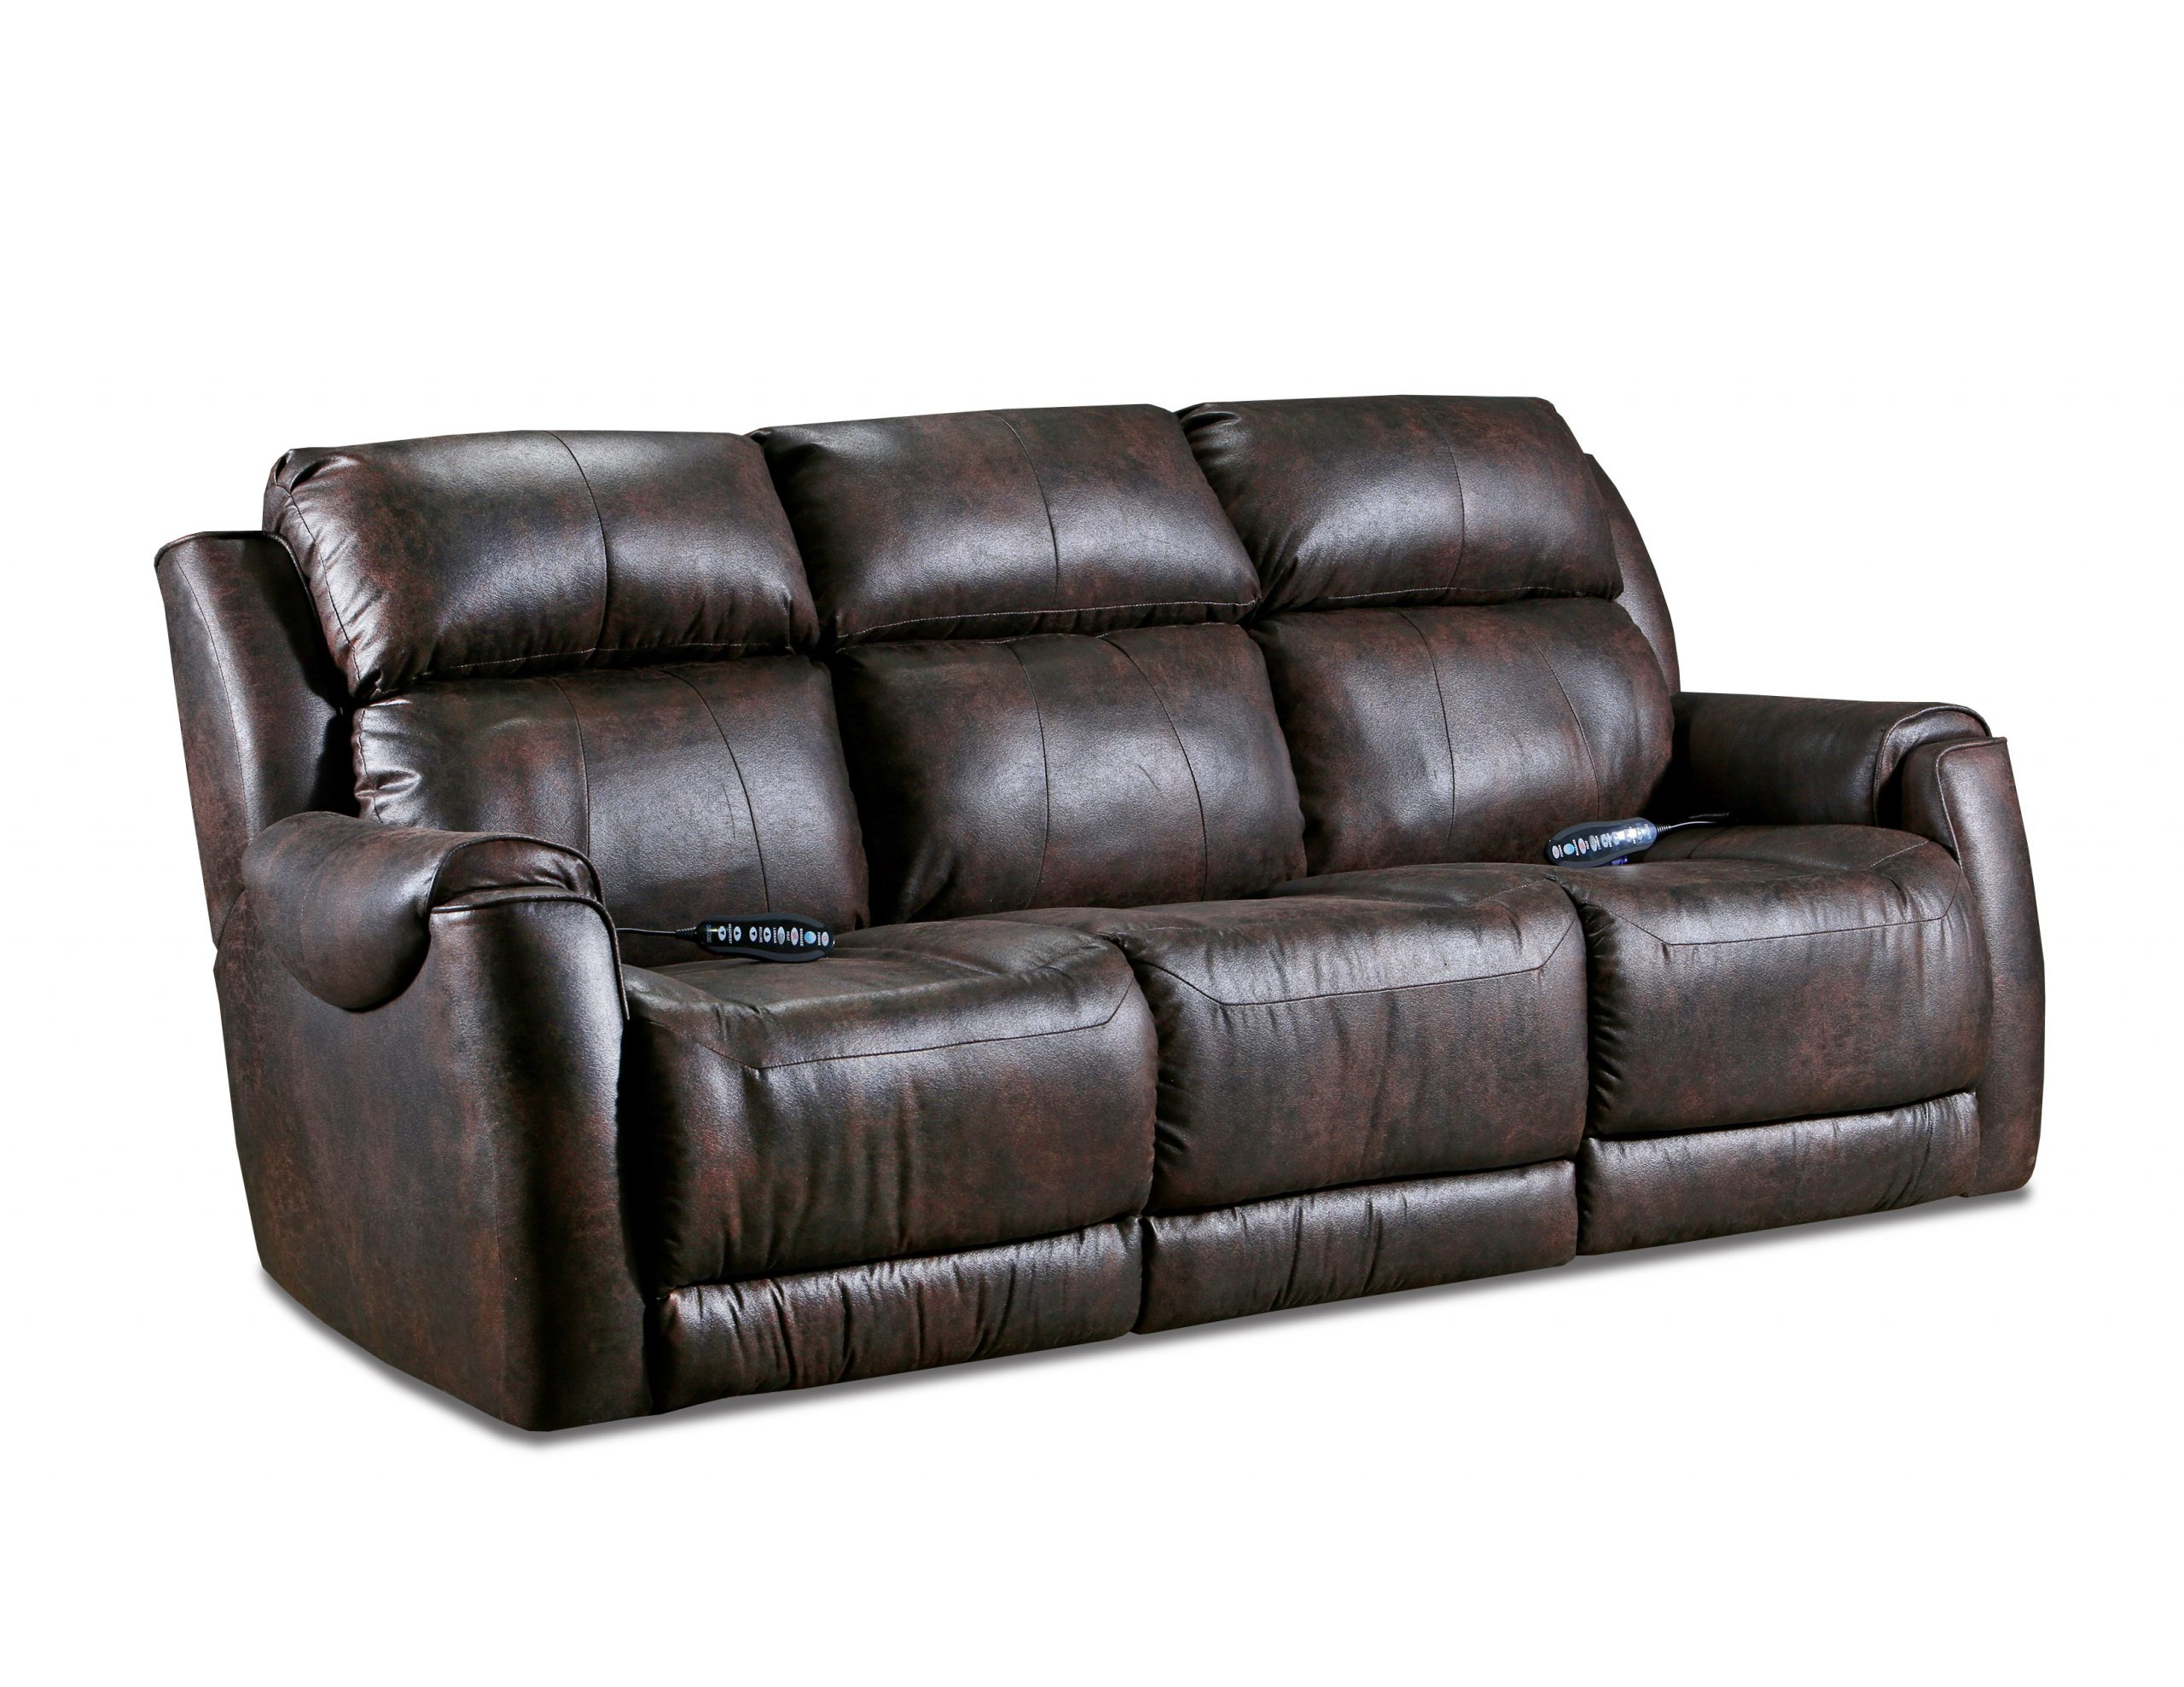 757-61-95p-in-252-22-socozi-sofa-scaled